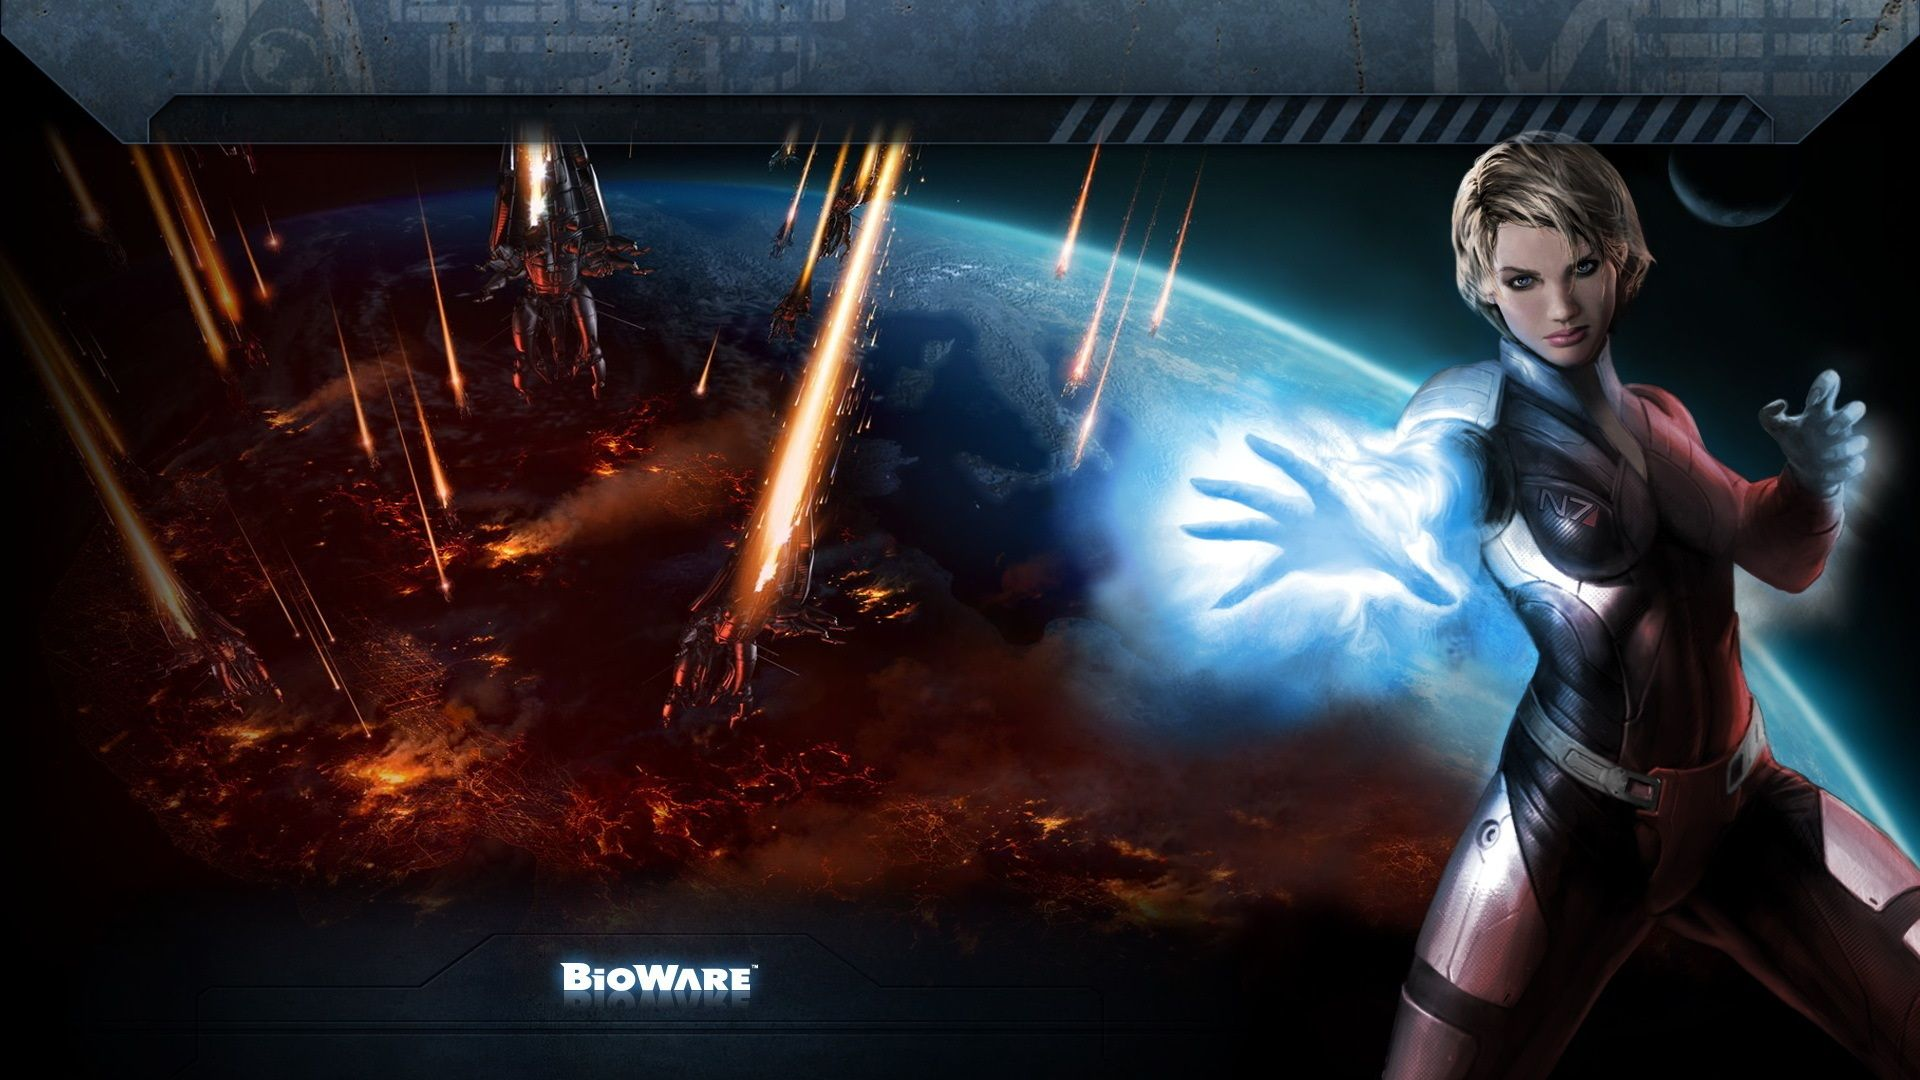 Mass Effect 3 Wallpapers Top Free Mass Effect 3 Backgrounds